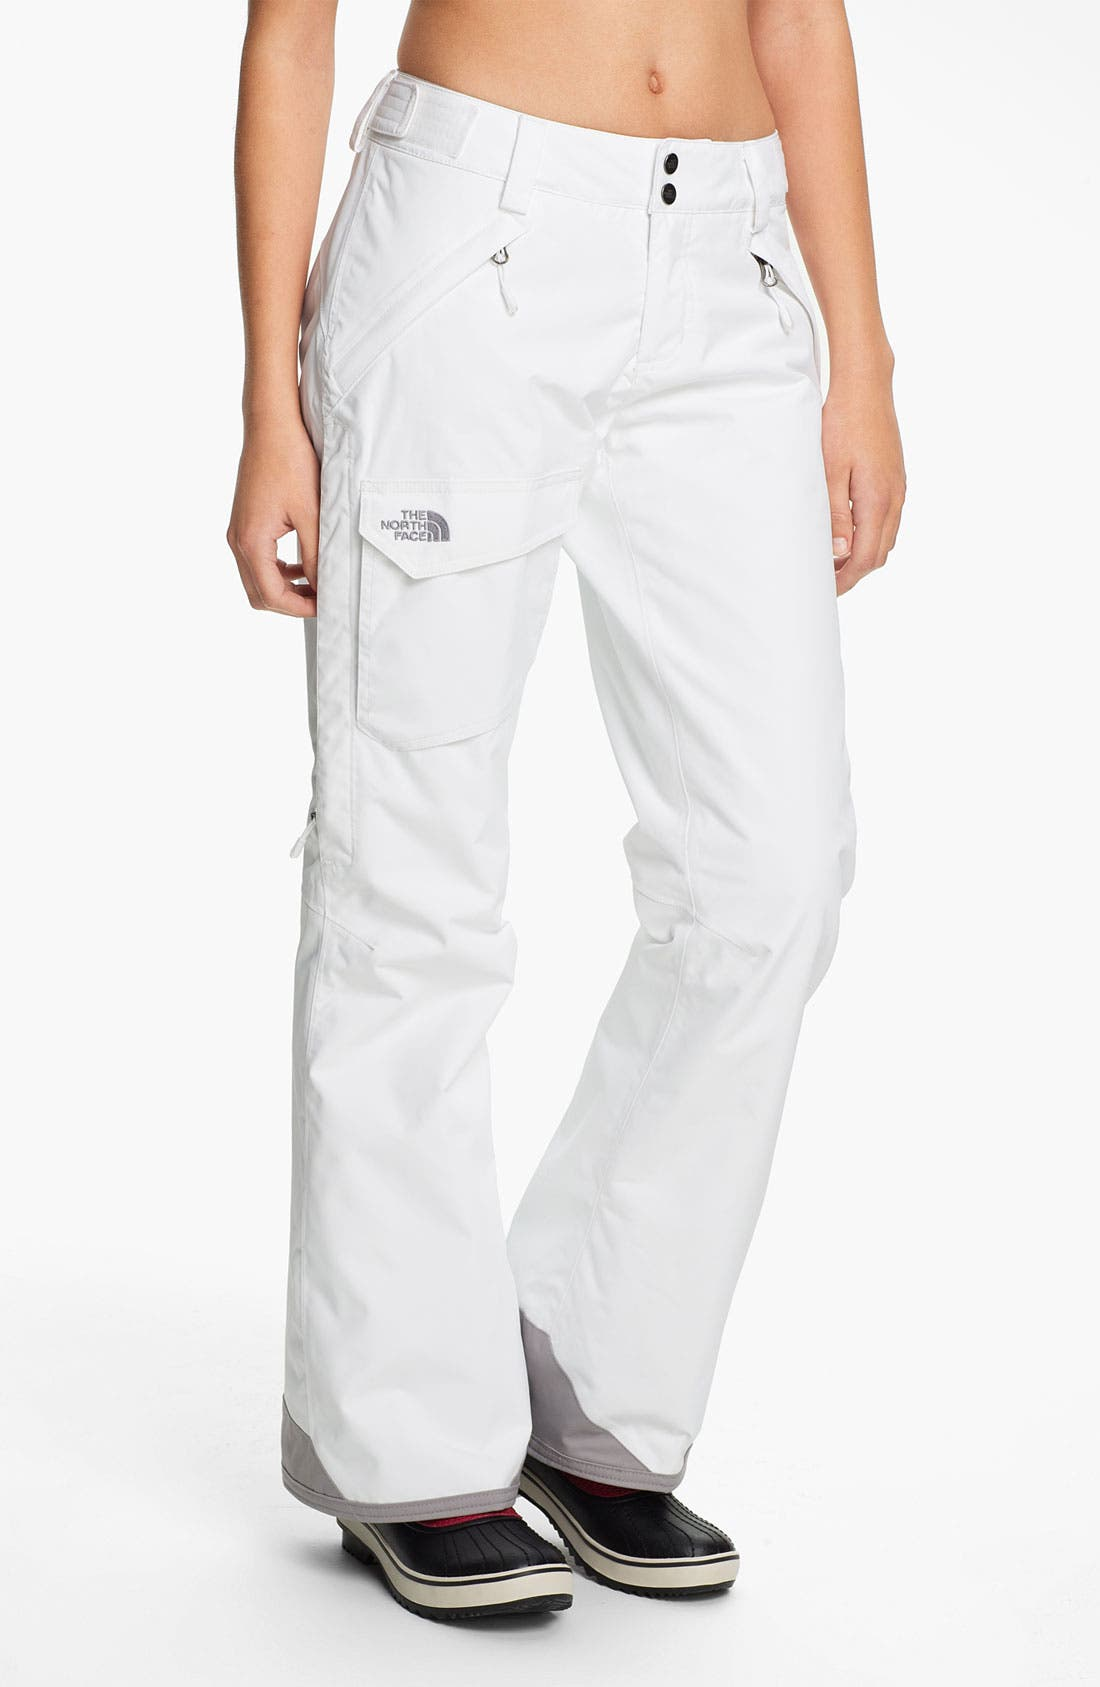 Main Image - The North Face 'Freedom LRBC' Insulated Pants